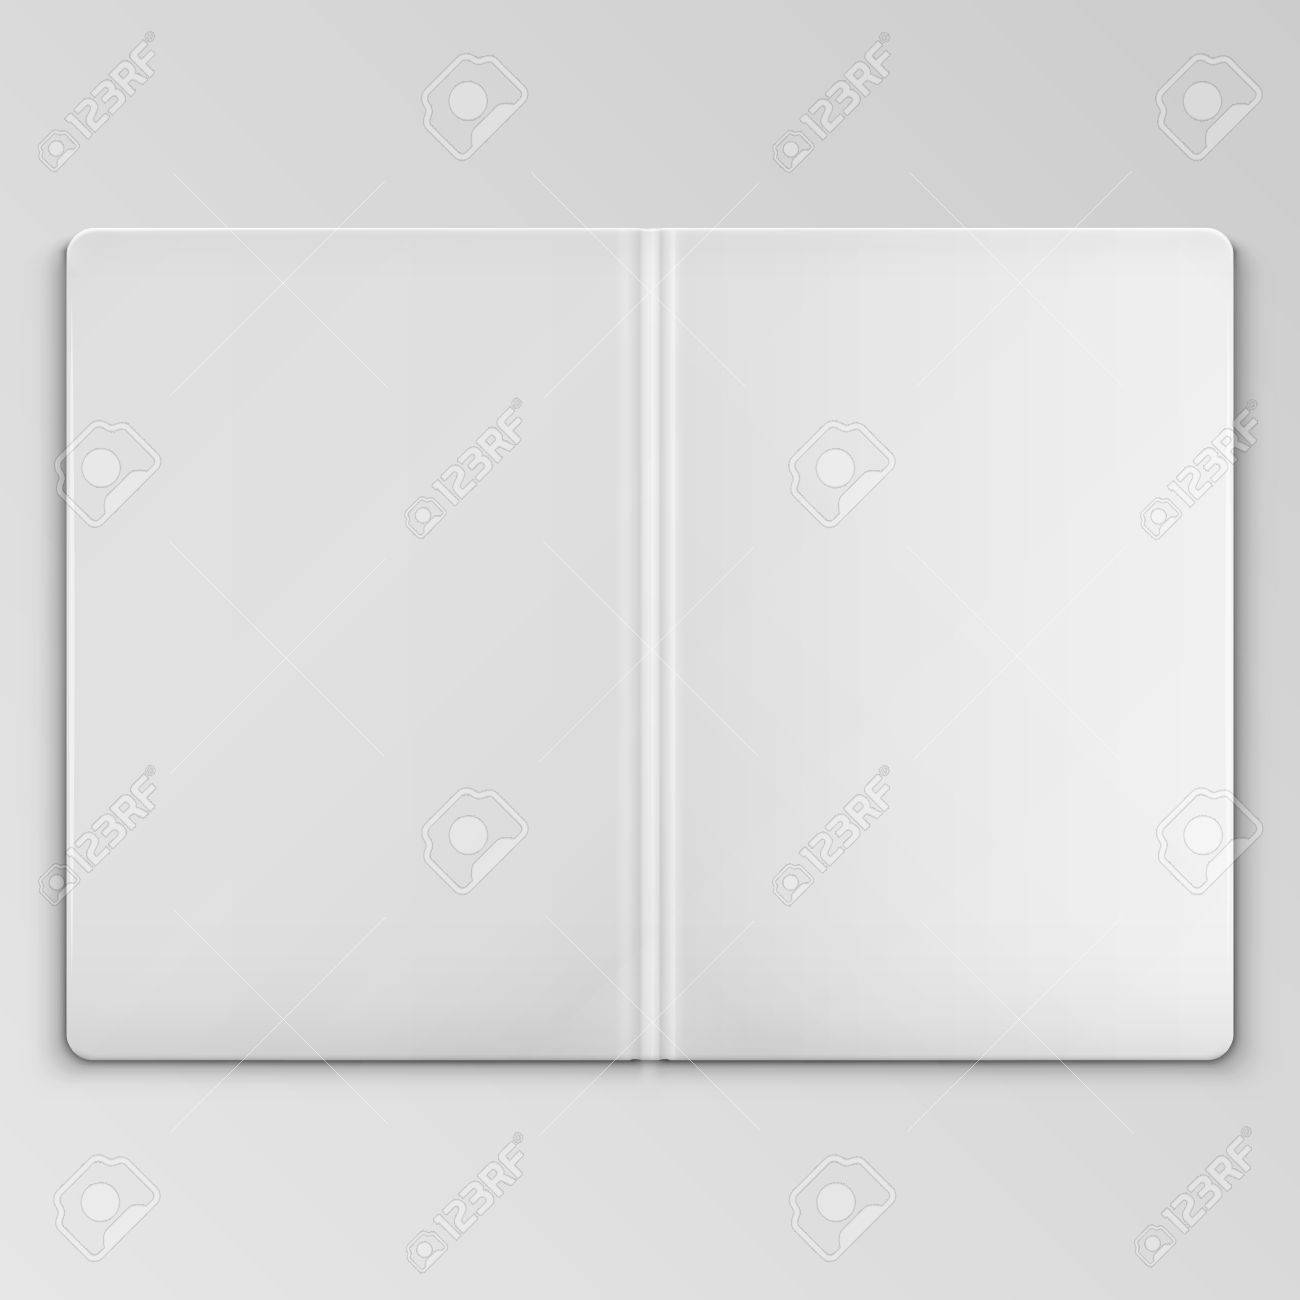 white open book cover template royalty free cliparts vectors and